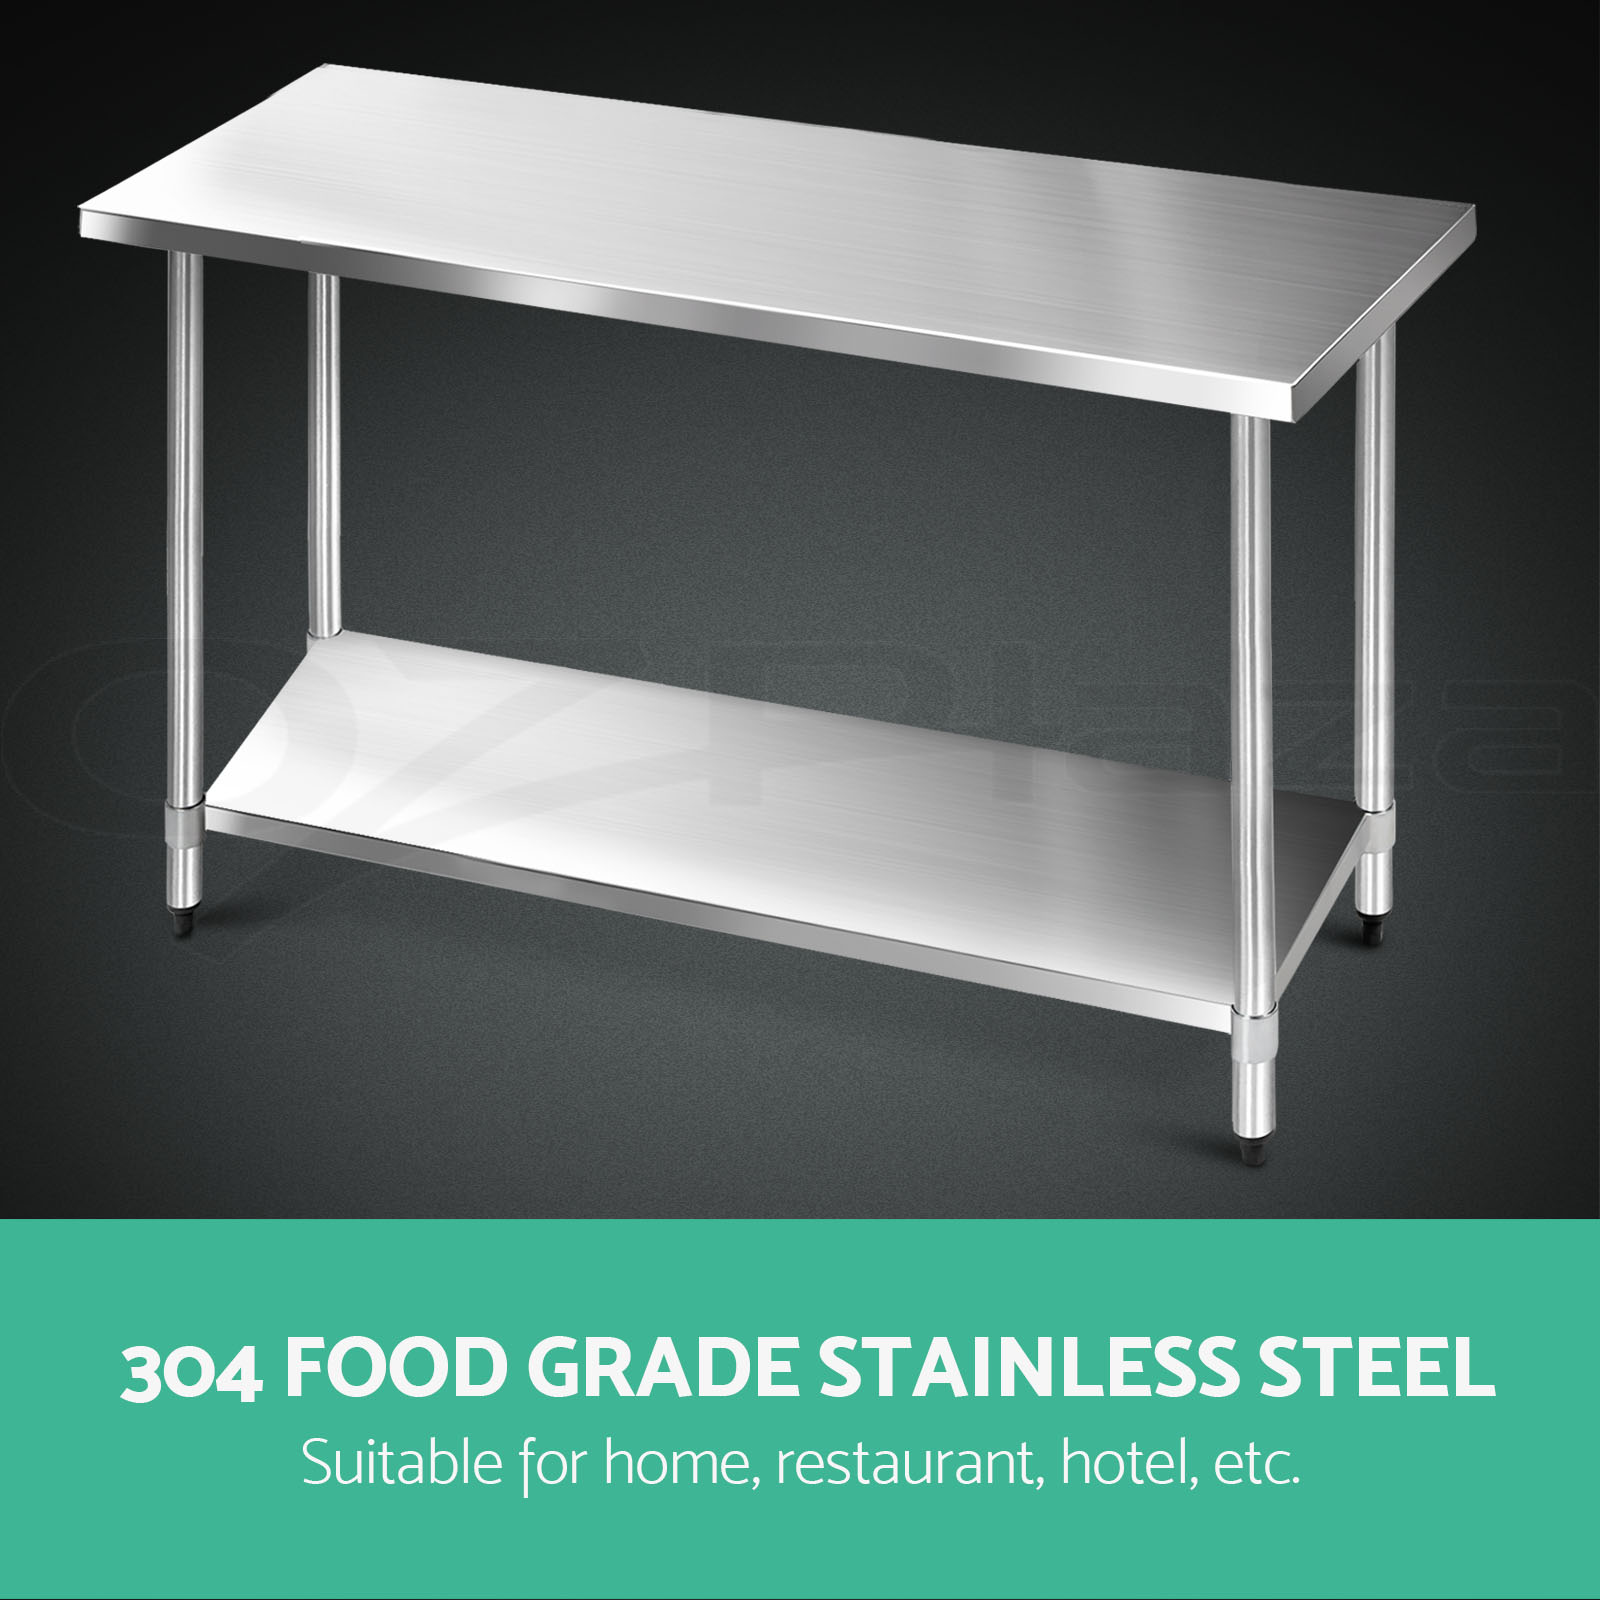 Commercial Grade Stainless Steel : 304-430-Commercial-Stainless-Steel-Kitchen-Work-Bench-Top-Food-Grade ...